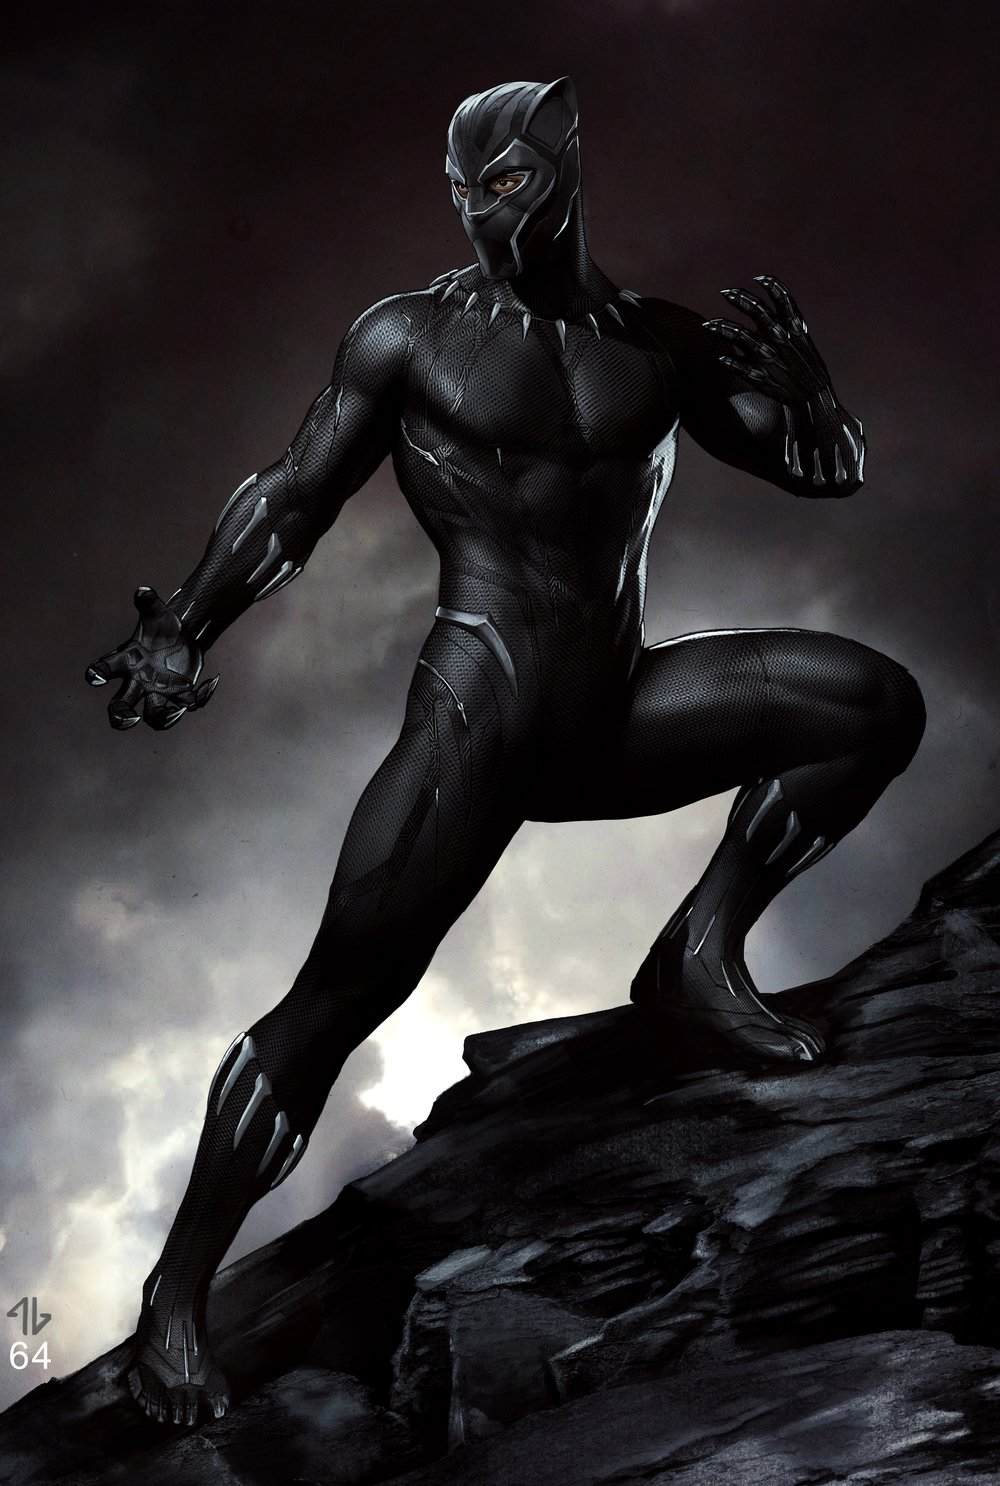 Black Panther fight pose